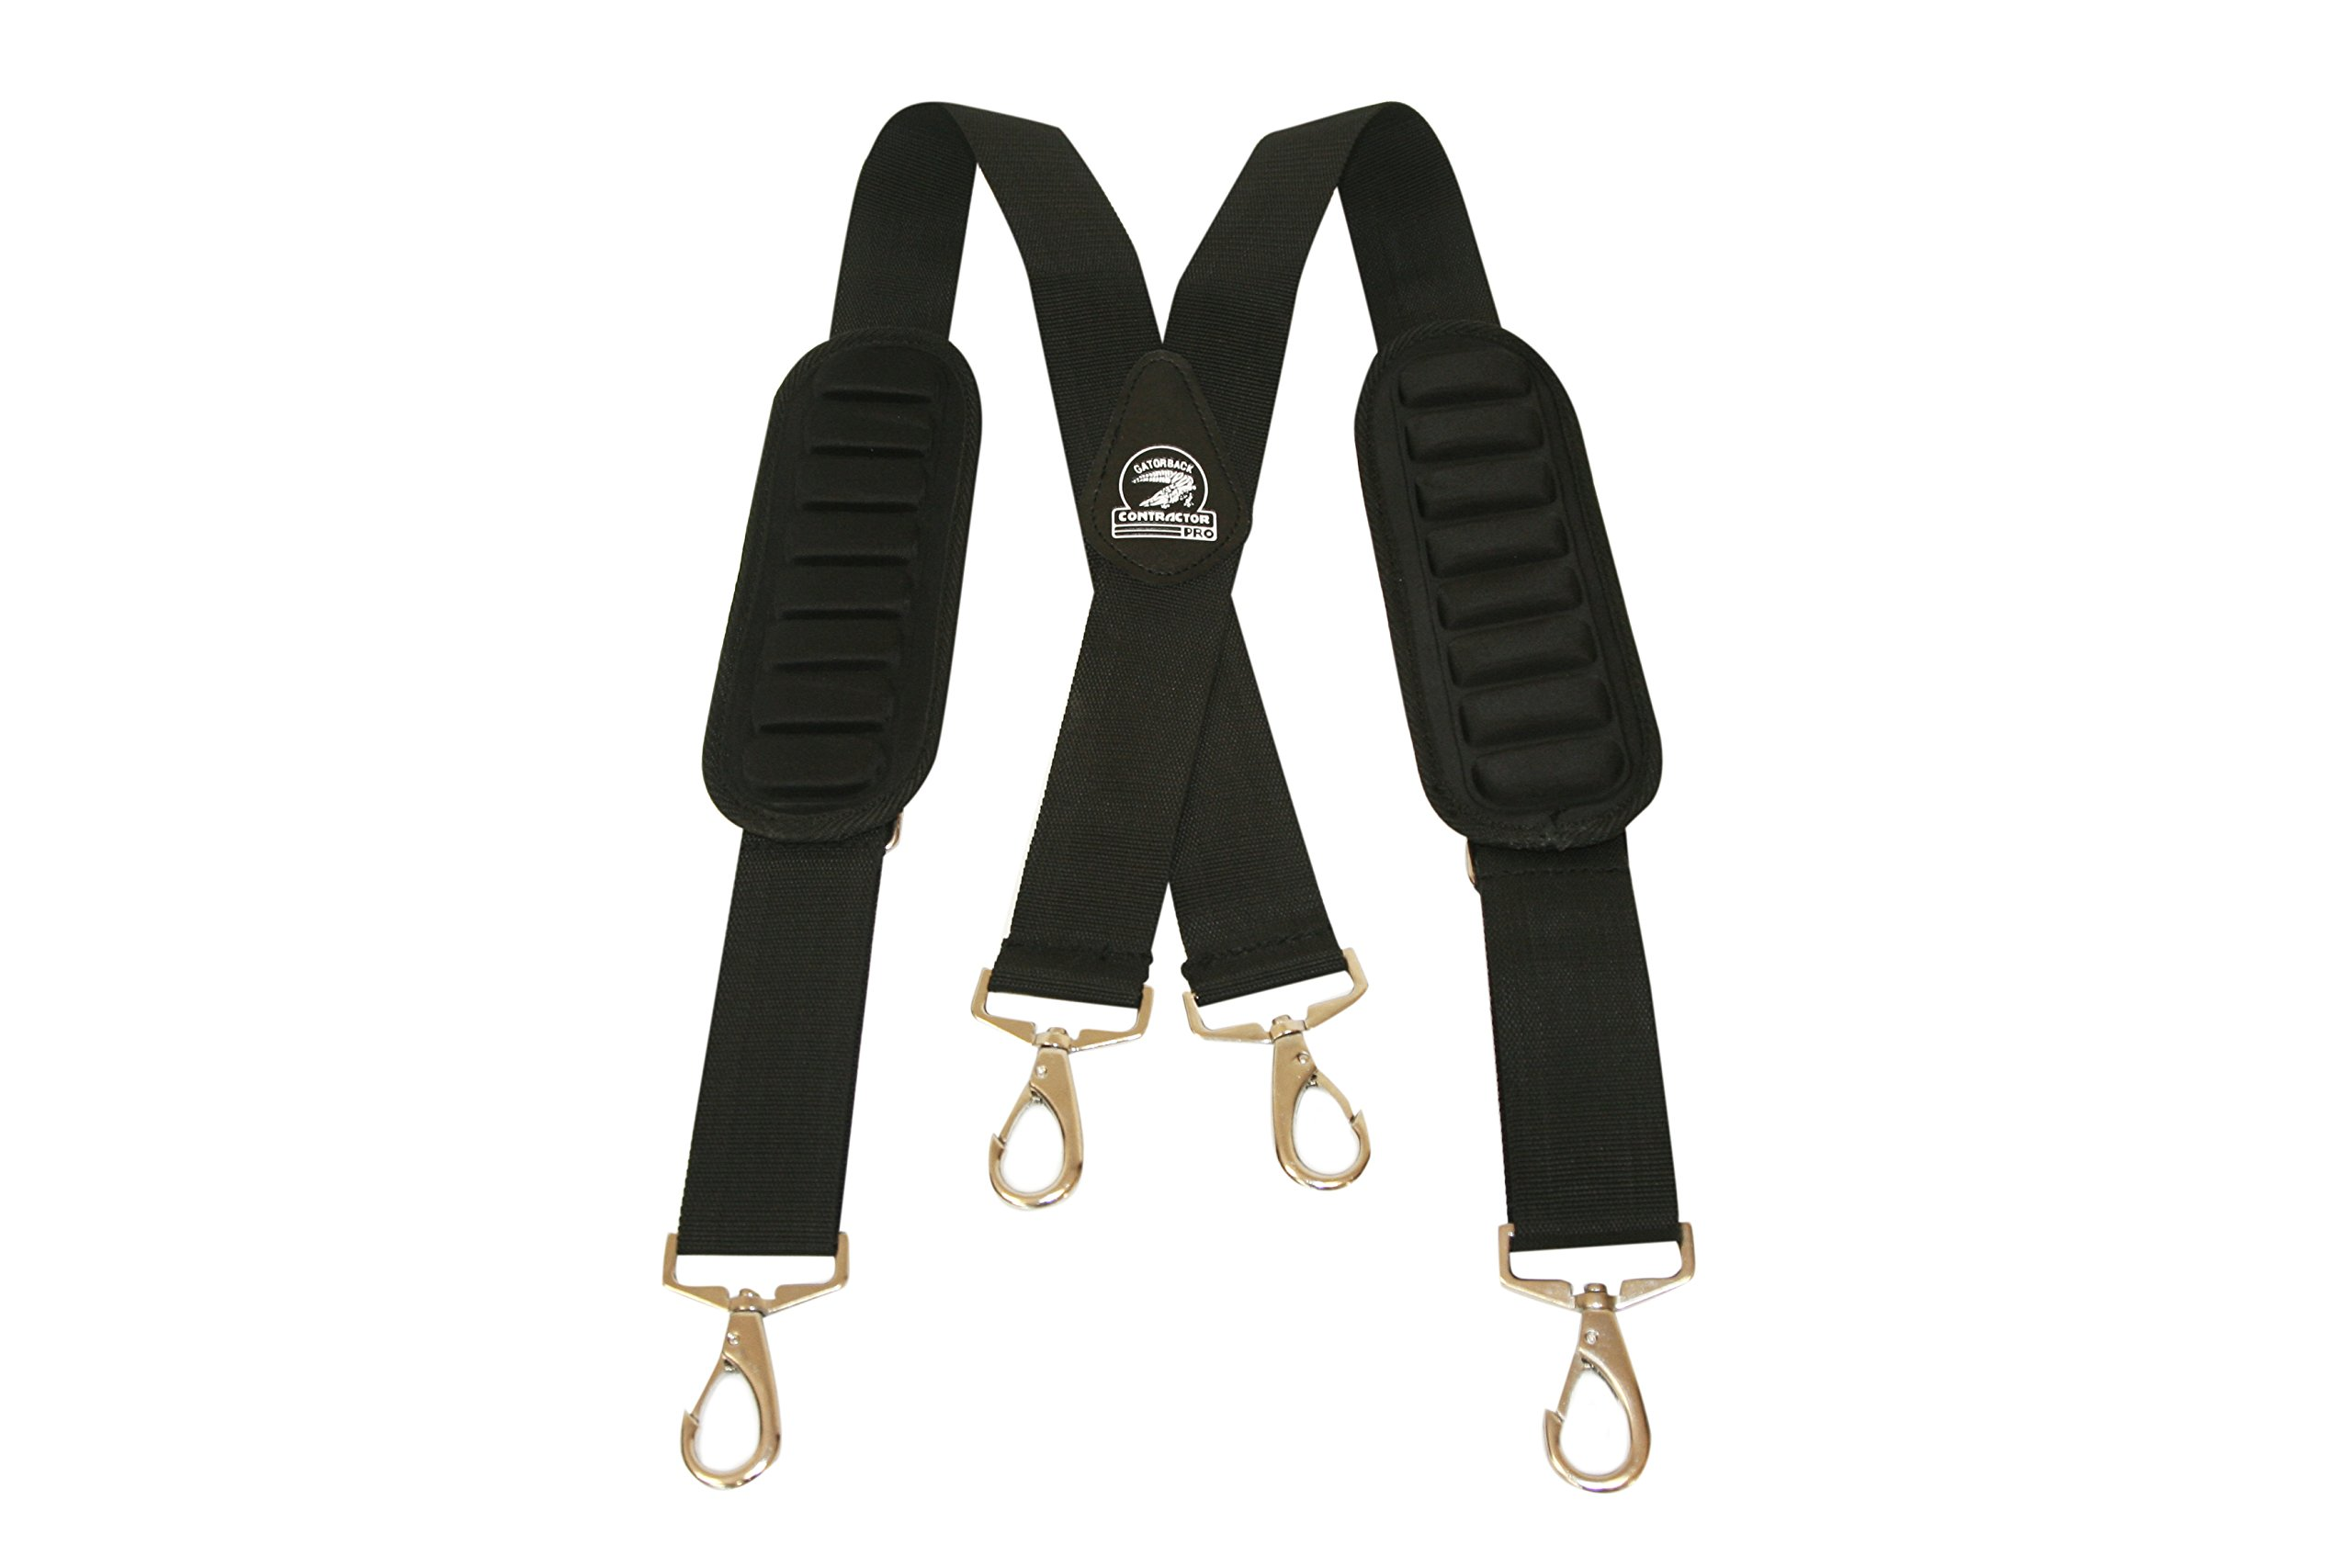 Contractor Pro Professional Electrician's Complete Package Plus+ (Tool Belt, Bucket Tote, Suspenders, and Gloves) 2XL 45-49 Inch Waist for Electricians, HVAC, Carpenters, Drywallers by Contractor Pro (Image #4)